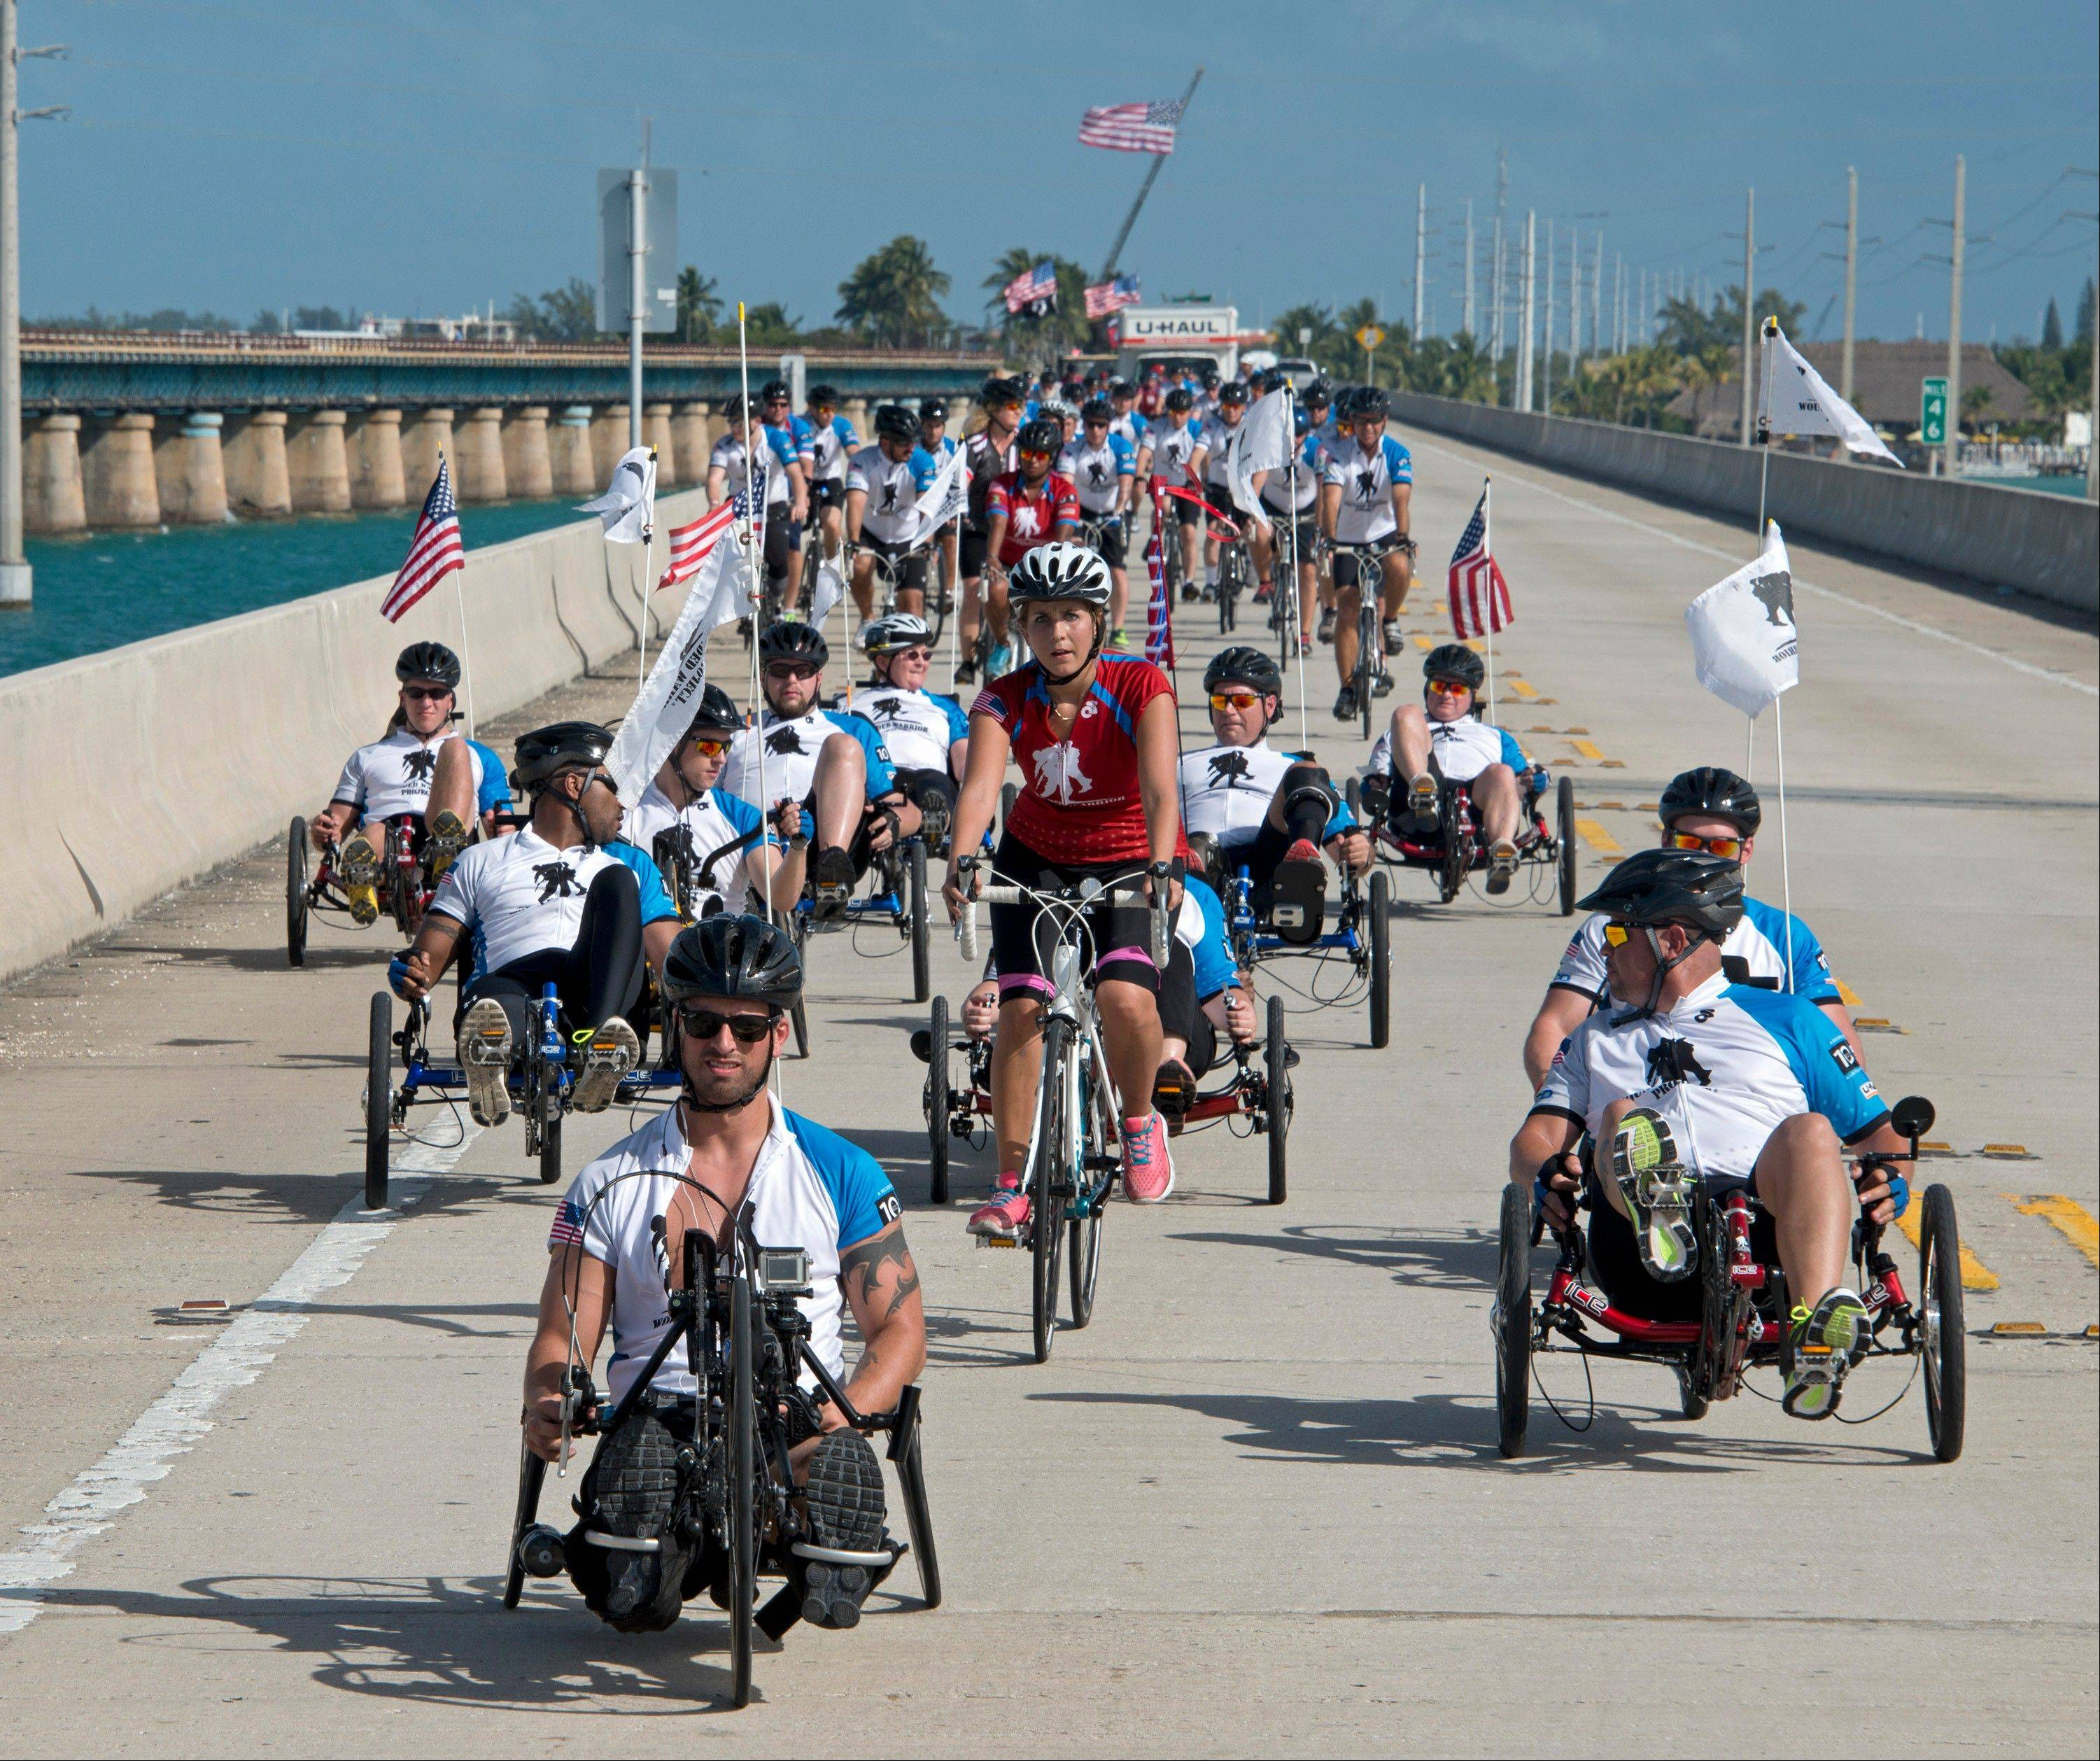 Wounded veterans of wars in Iraq and Afghanistan pedal their way Friday across the Seven Mile Bridge in the Florida Keys near Marathon, Fla.